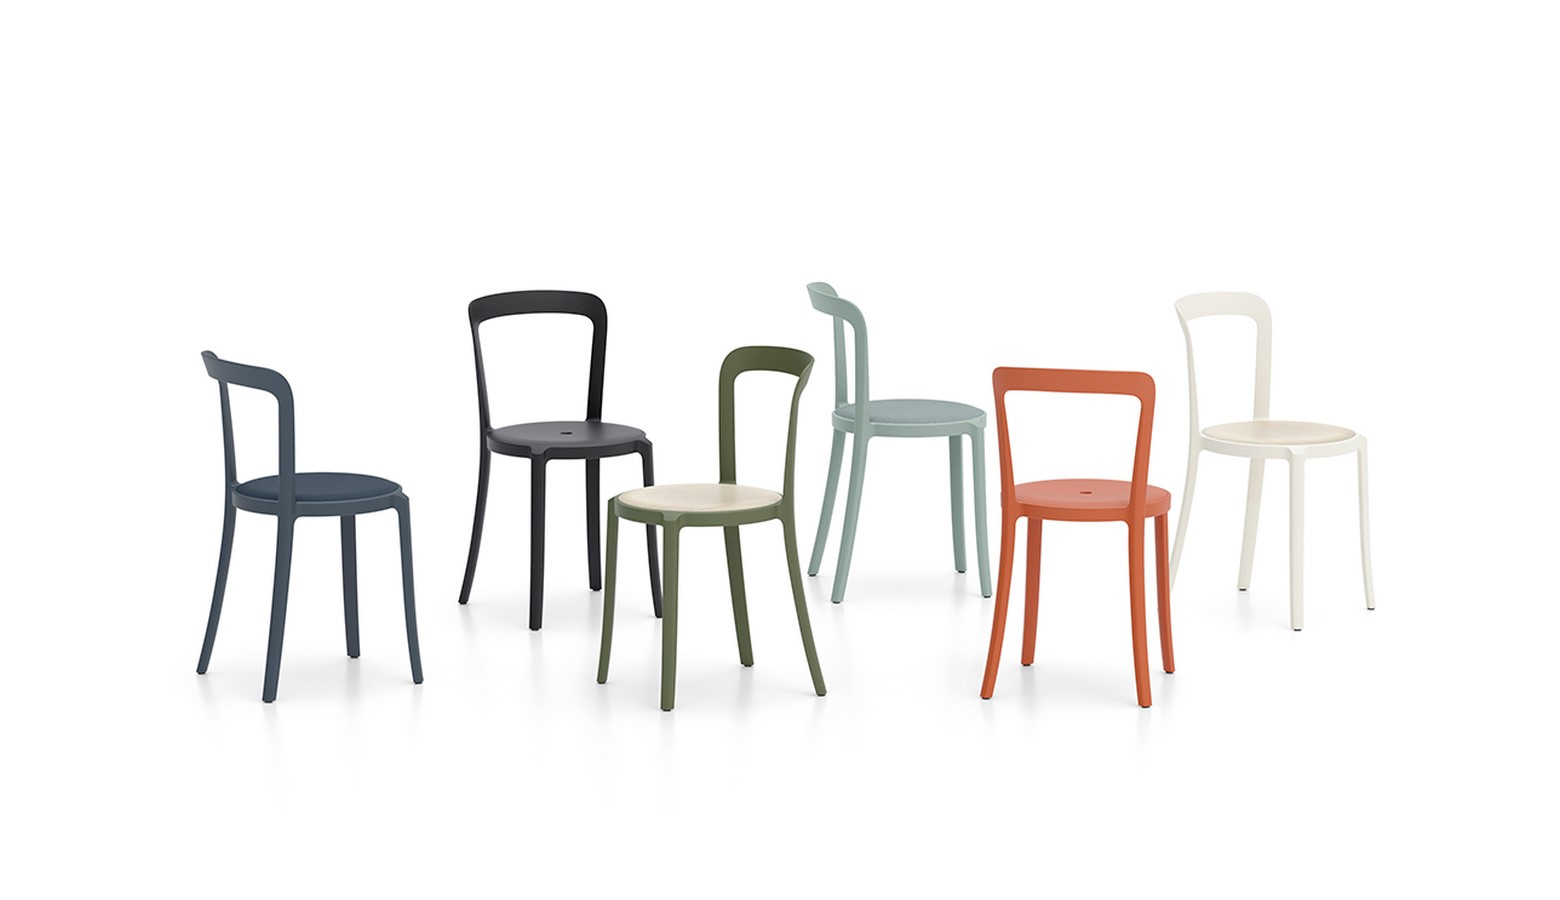 On and on collection: Emeco + Barber & Osgerby - Sheet1